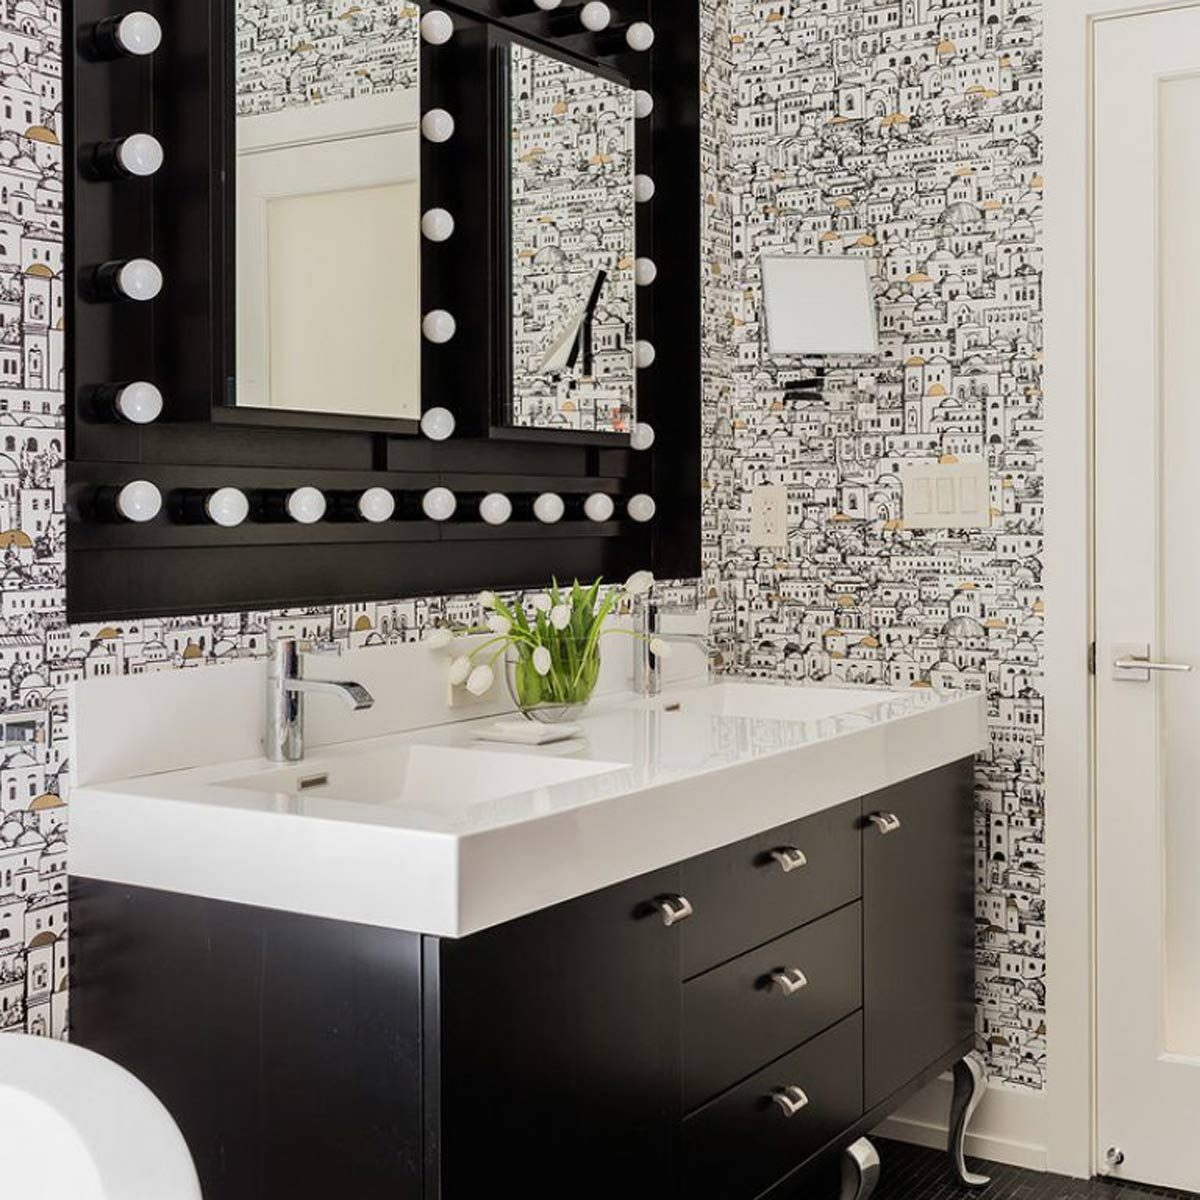 12 Bathroom Trends on the Way Out — The Family Handyman